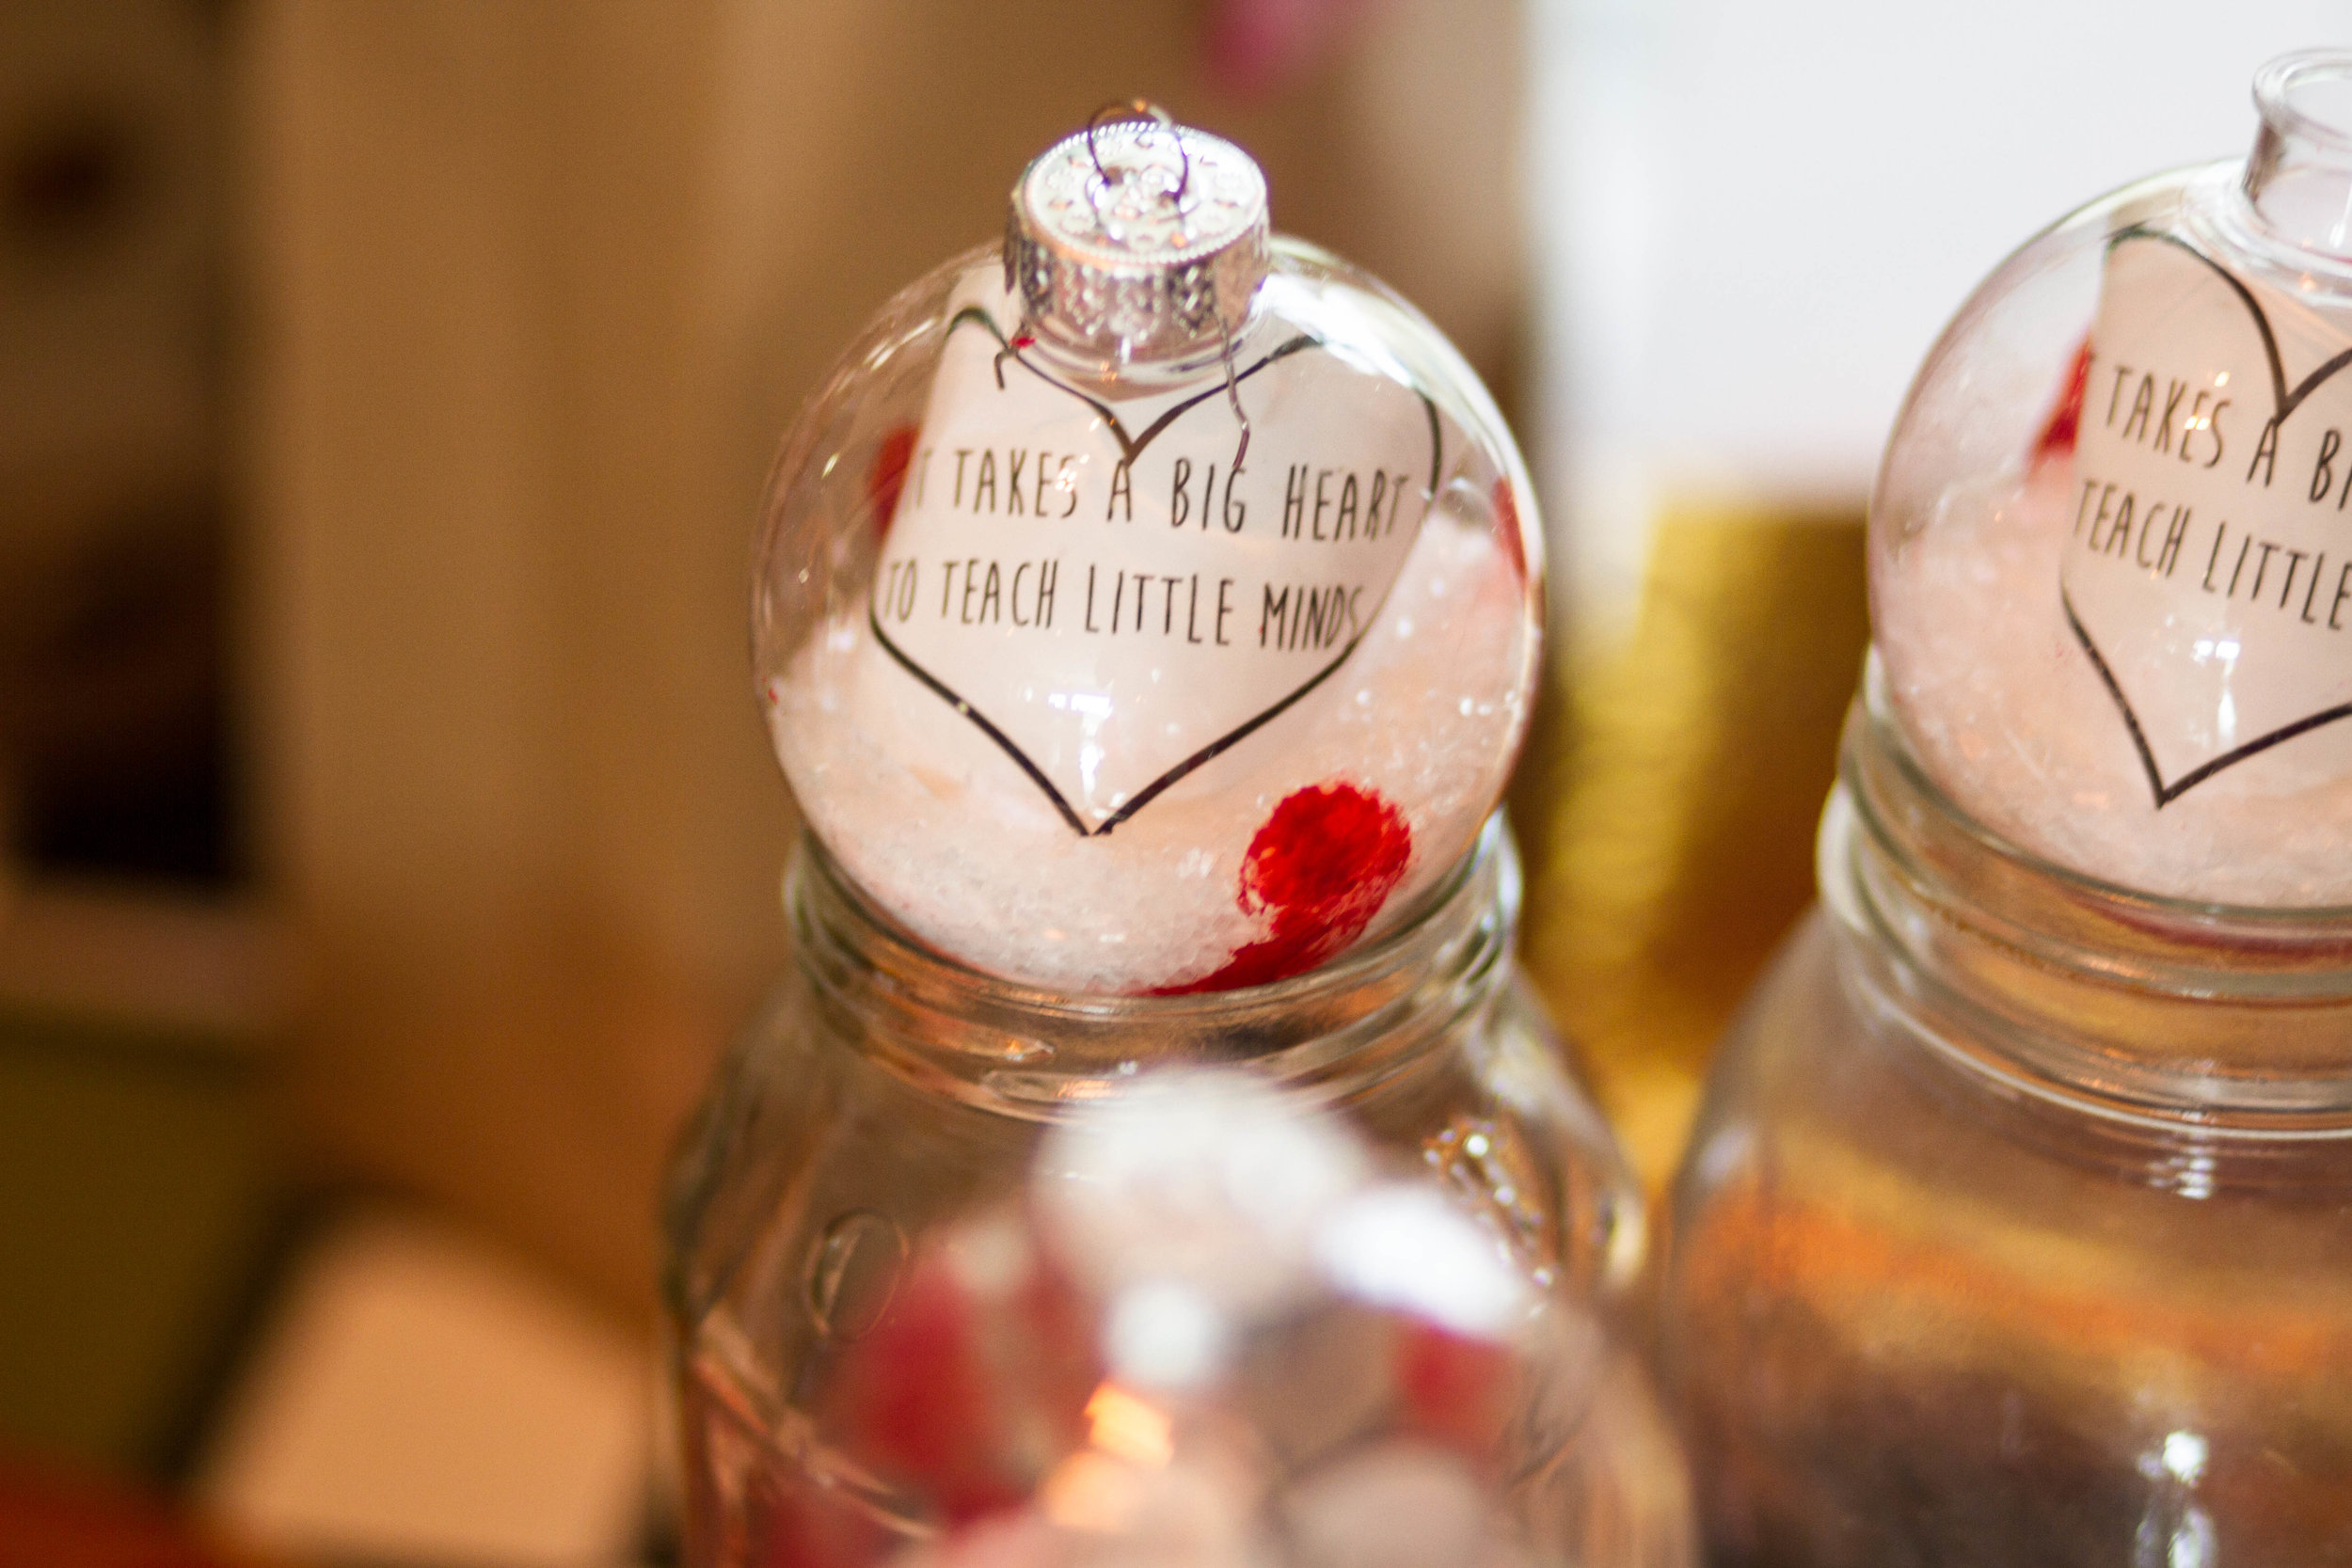 Next fill up with Epsom salt and add your cute little notes!